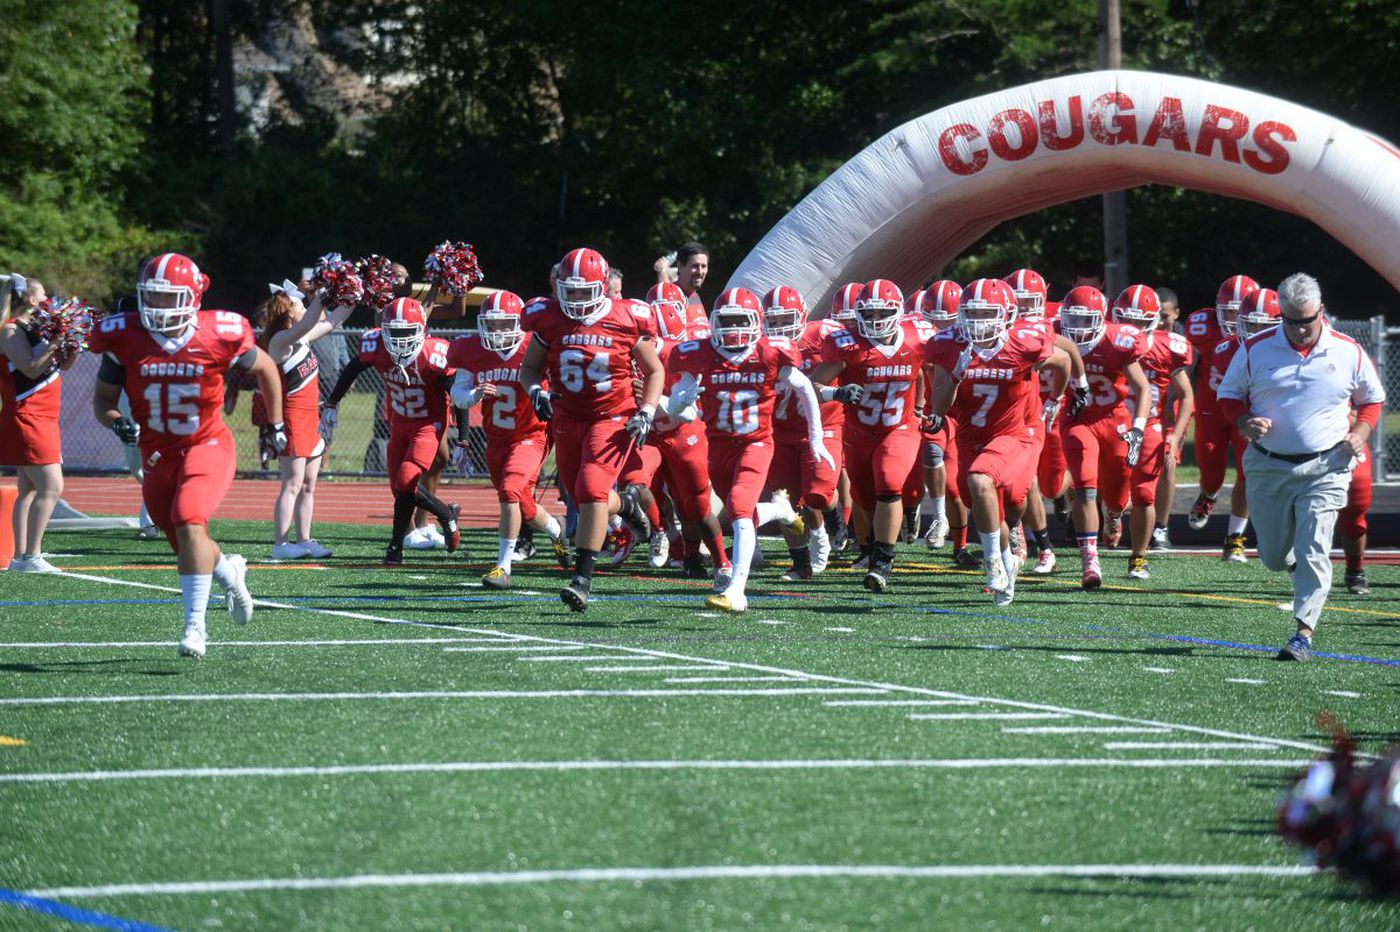 More frustration for Cherry Hill East football | Phil Anastasia